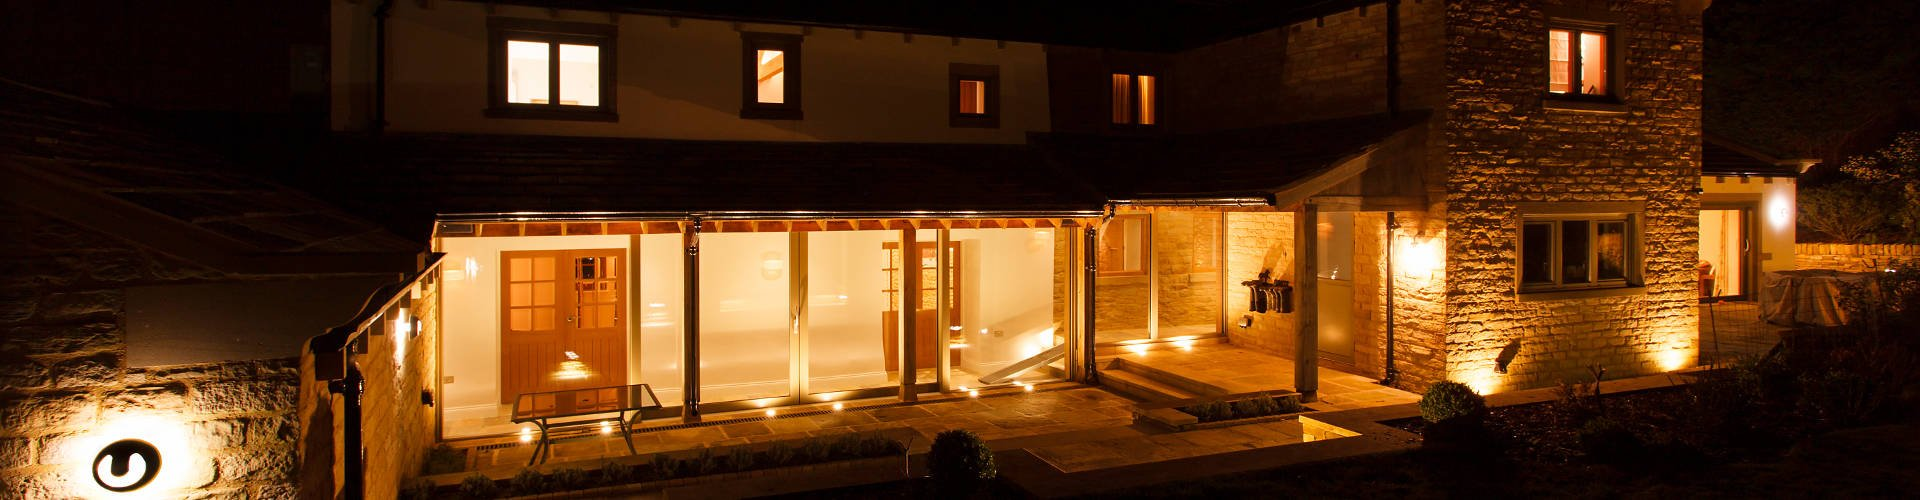 Title Image: A warmly-lit glass hallway linking two ends of a converted Yorkshire farmhouse.